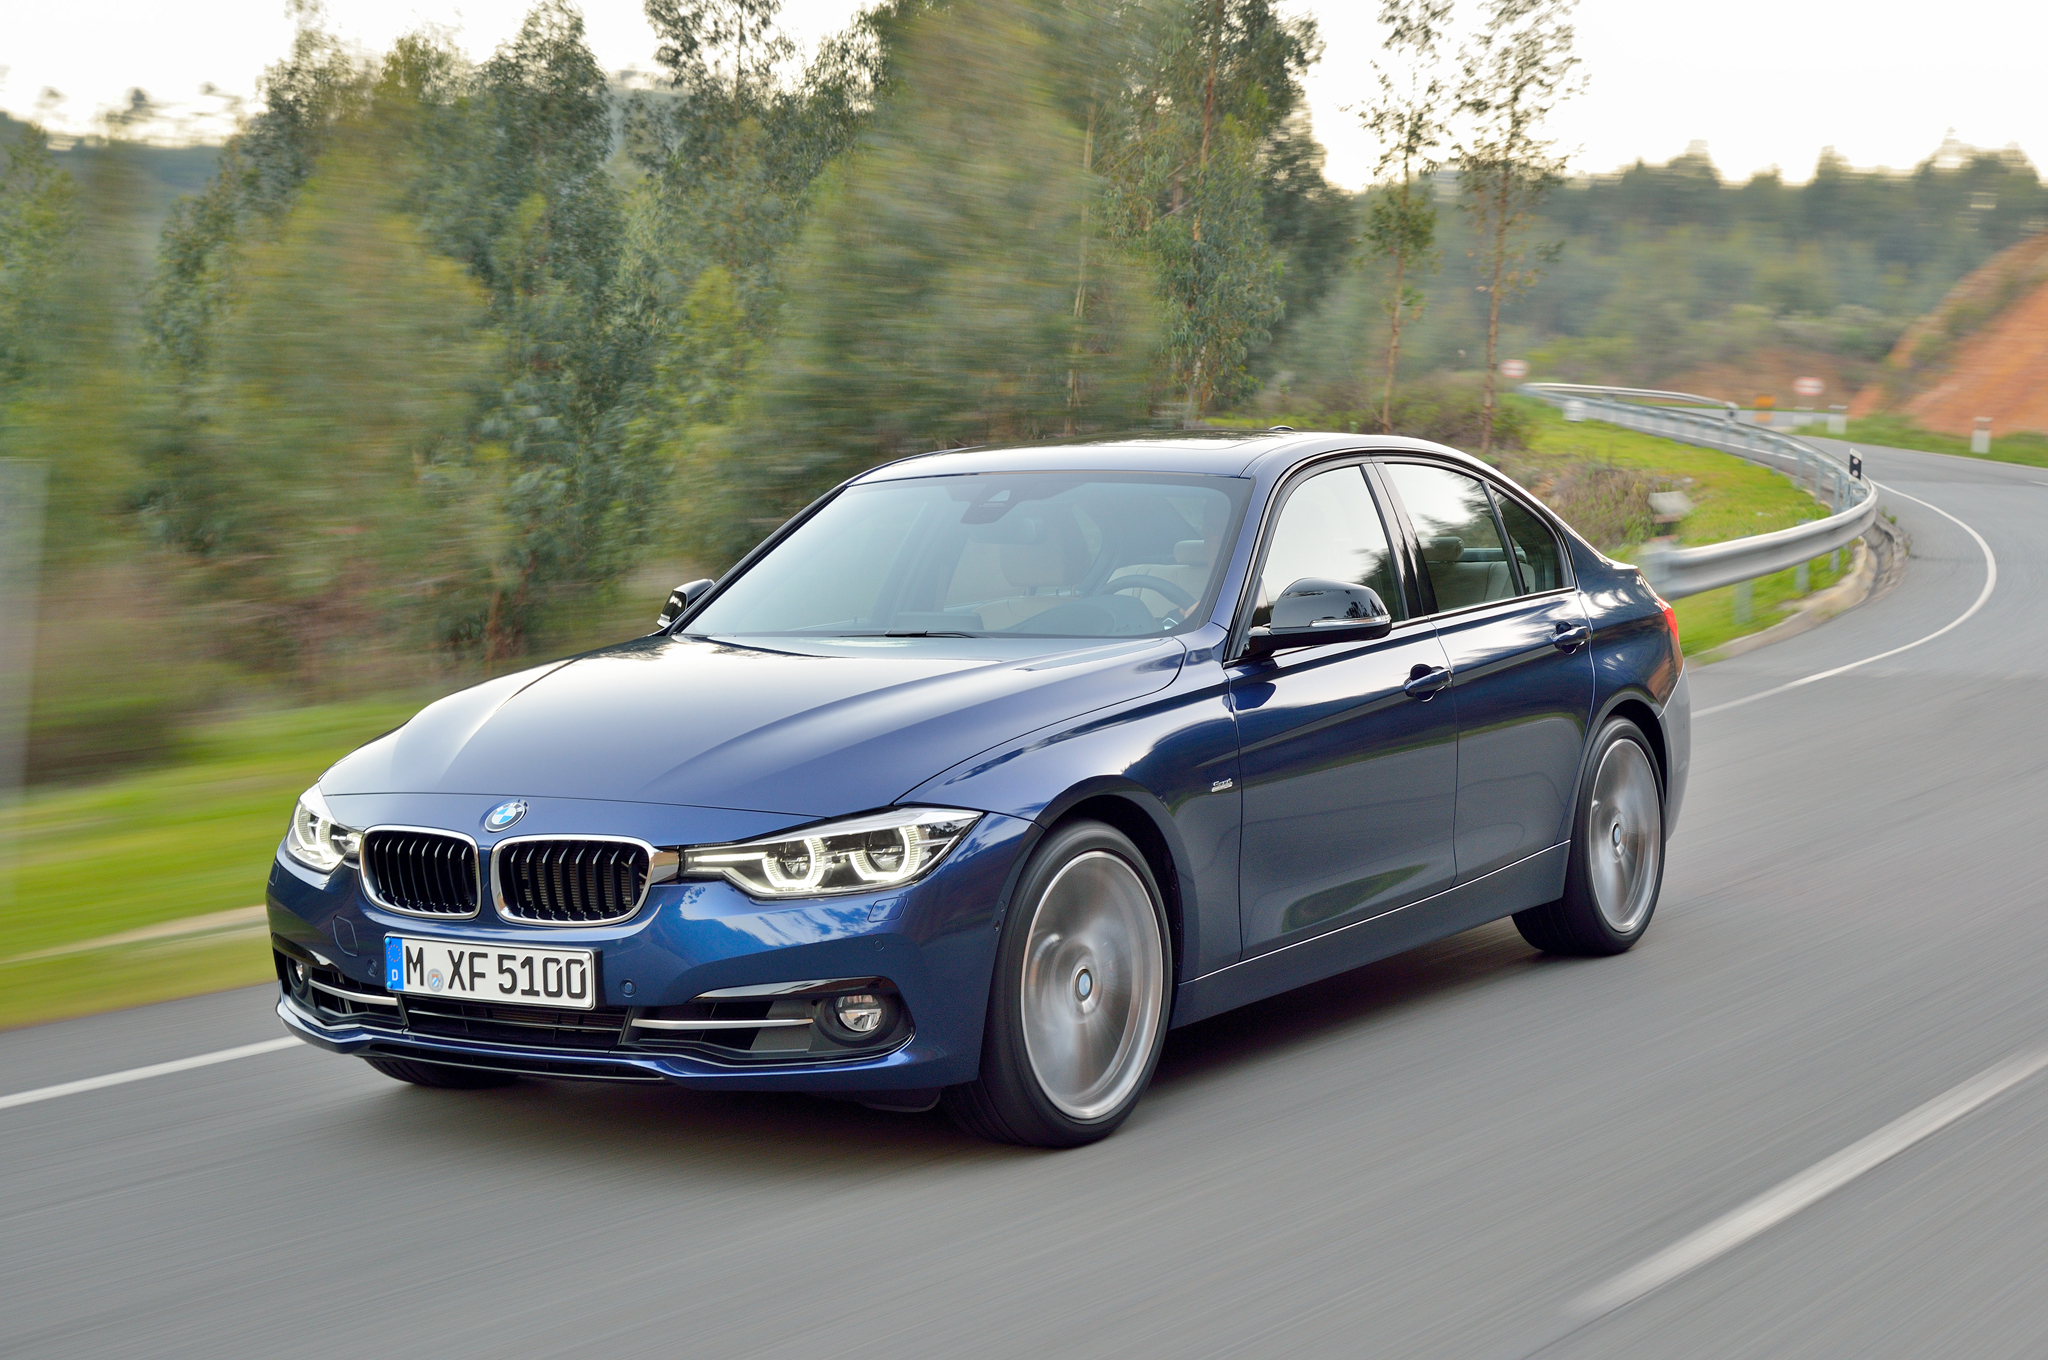 2016 bmw 340i xdrive road test review pricing fuel economy specifications. Black Bedroom Furniture Sets. Home Design Ideas